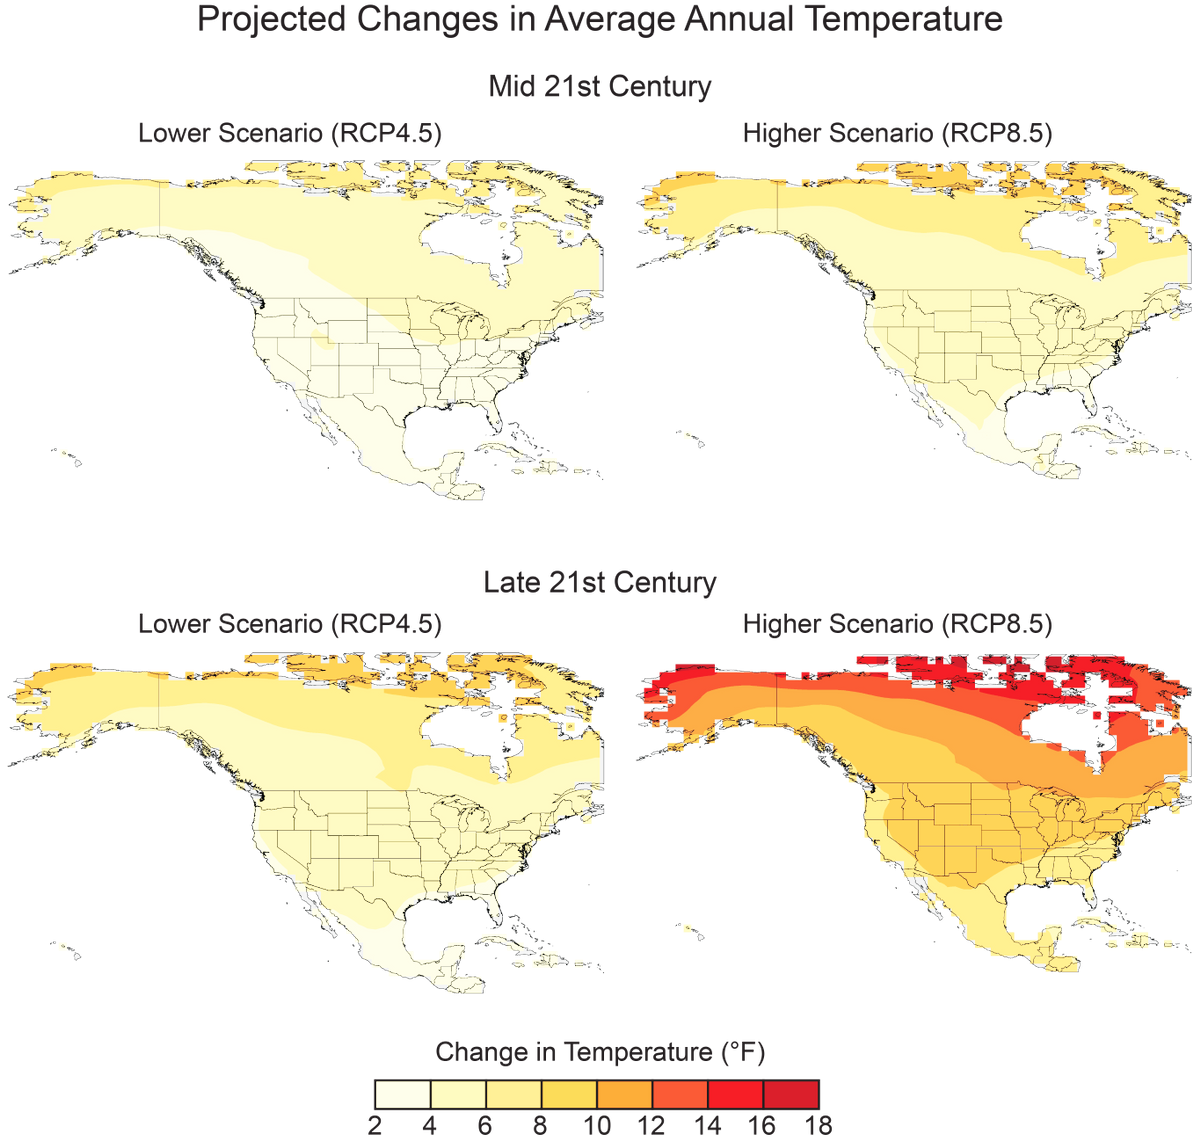 Report explains that most climate models are underestimates